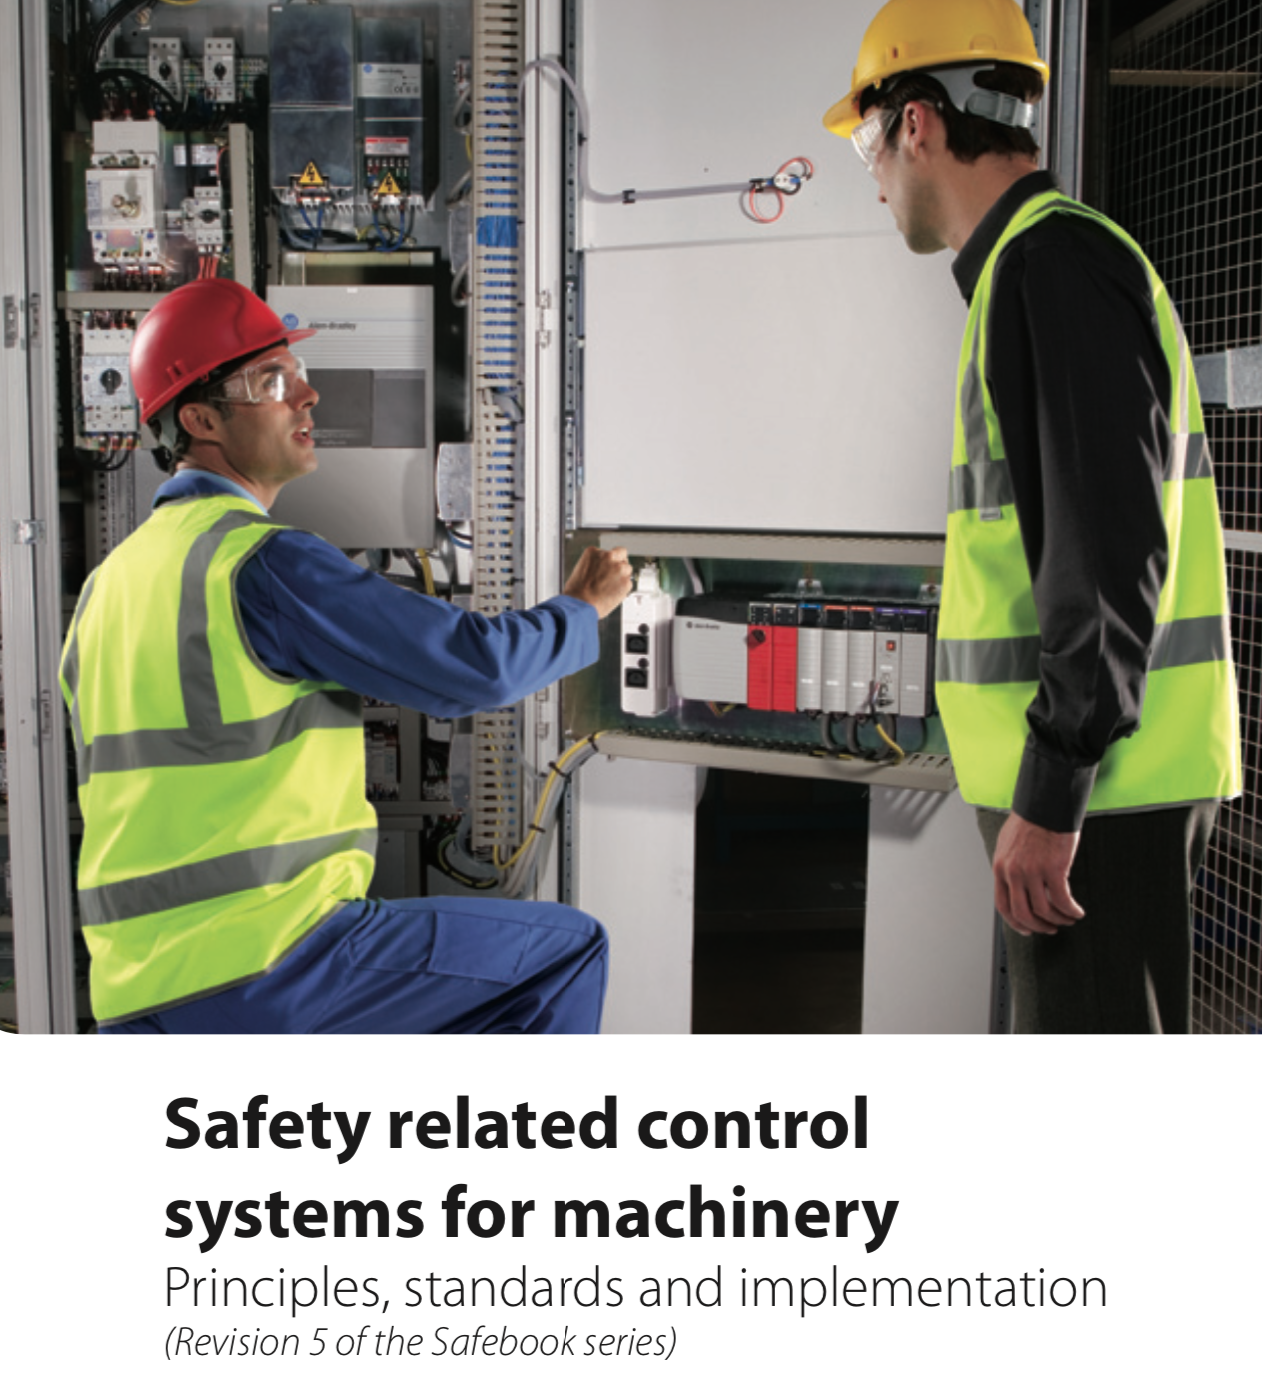 Safety related control systems for machinery